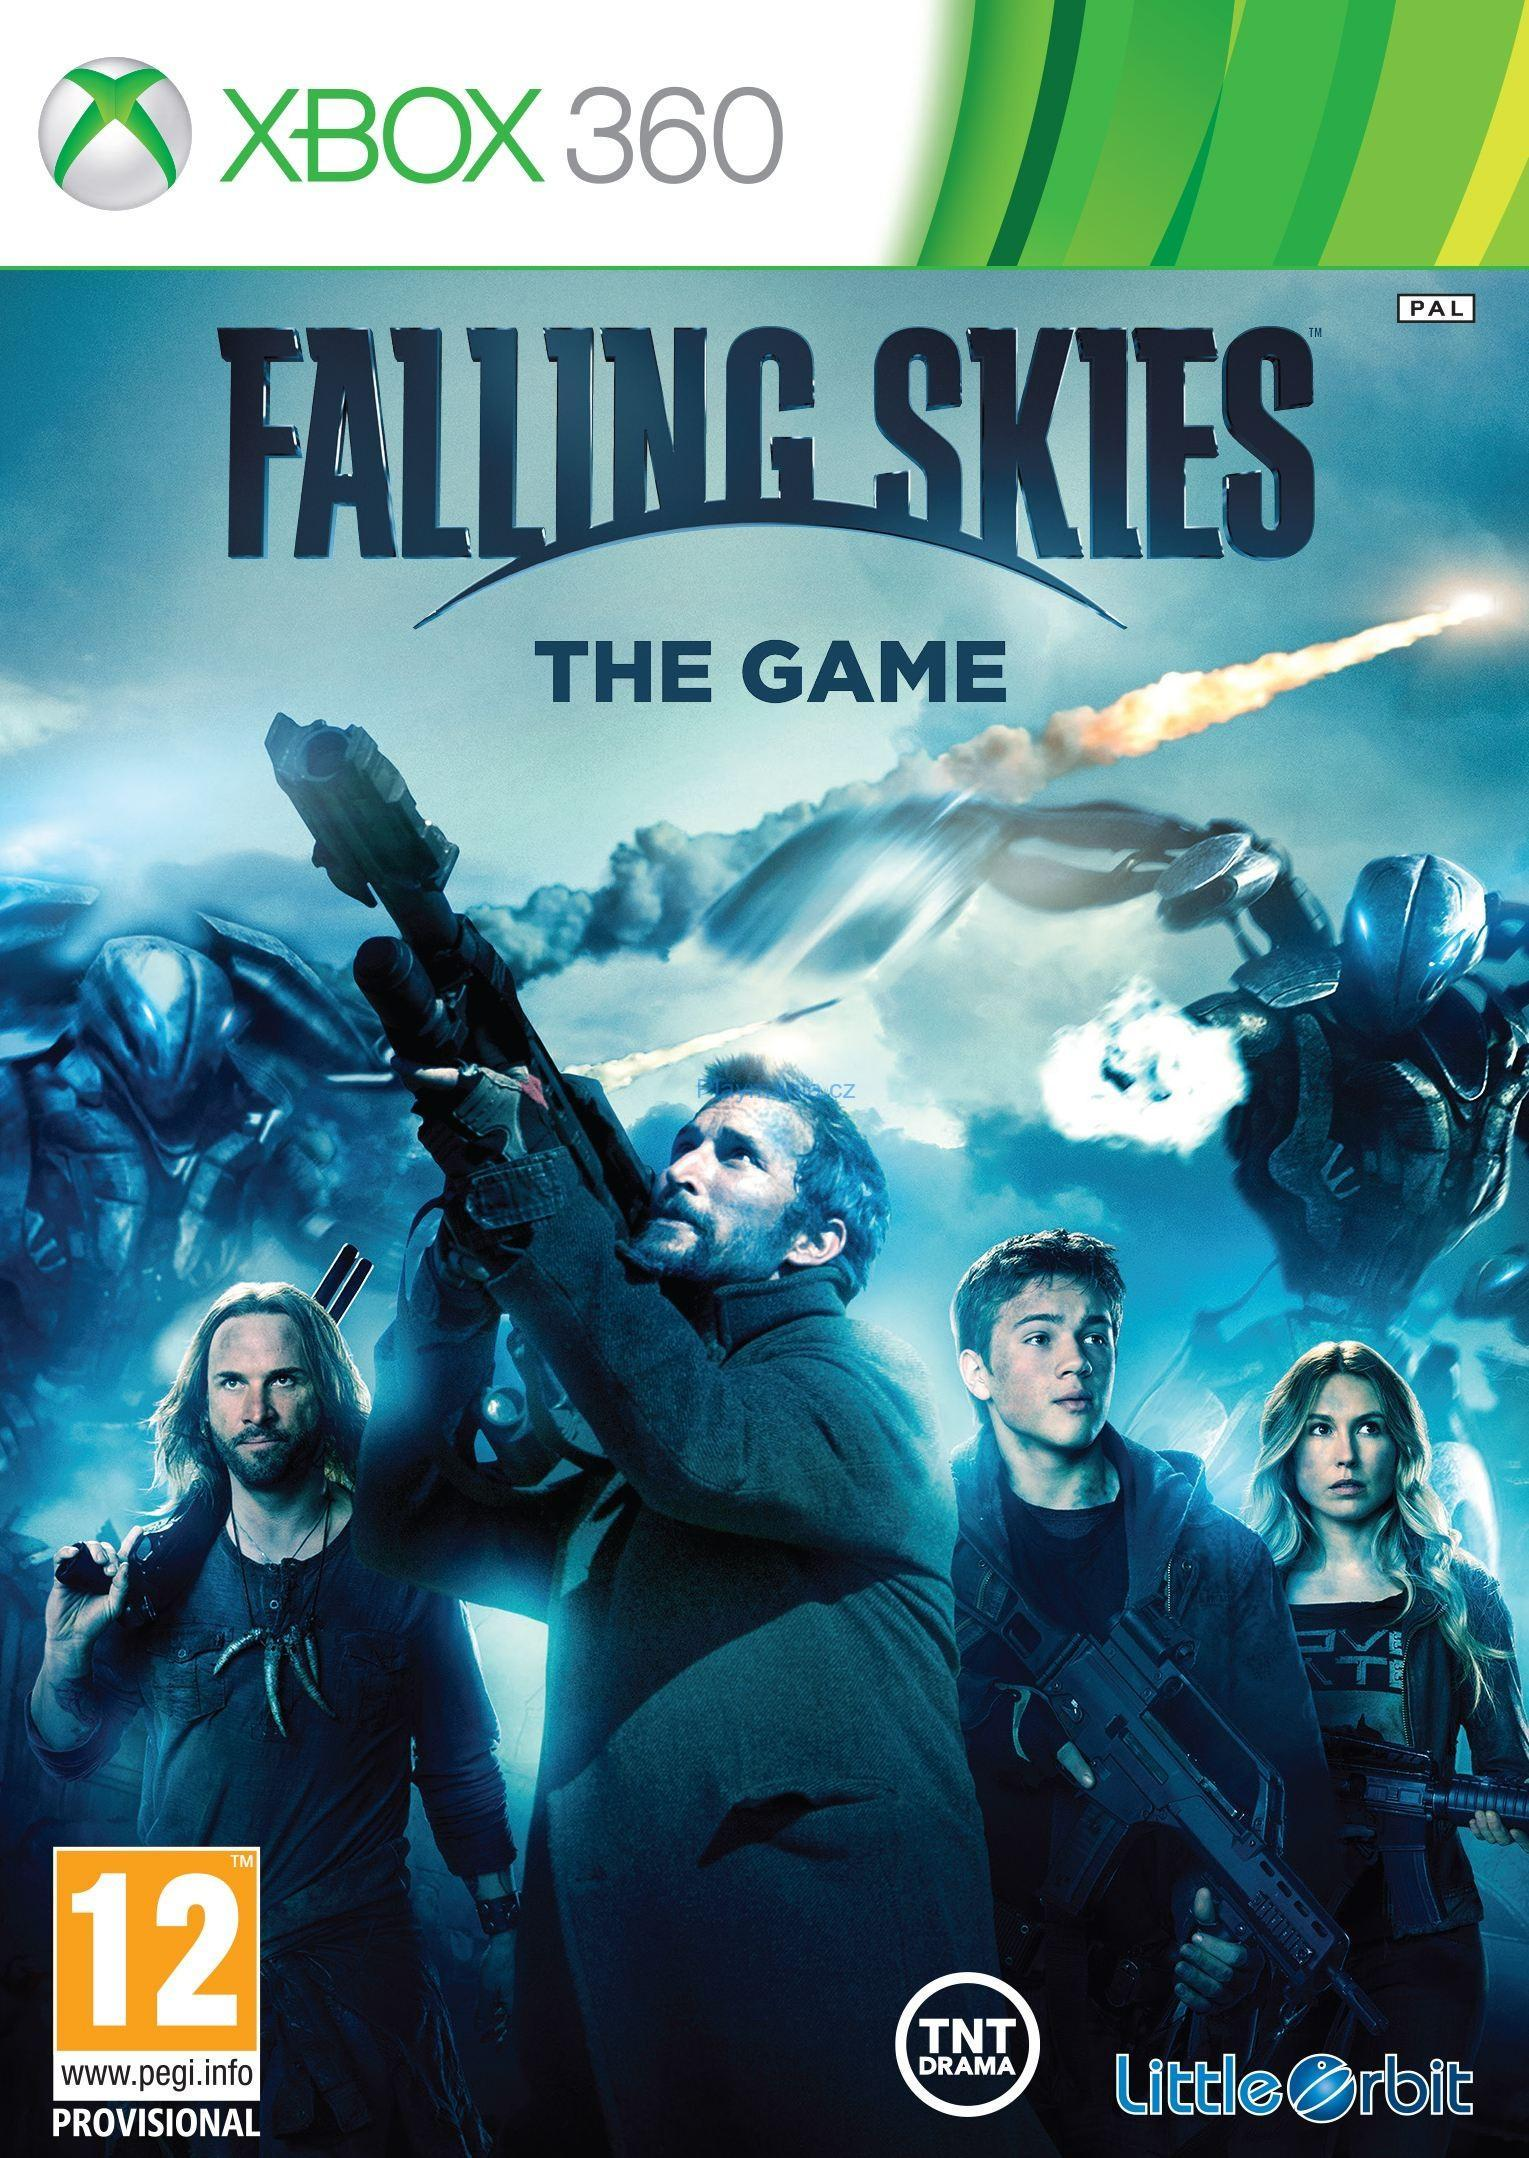 BAZAR XBOX 360 FALLING SKIES THE GAME